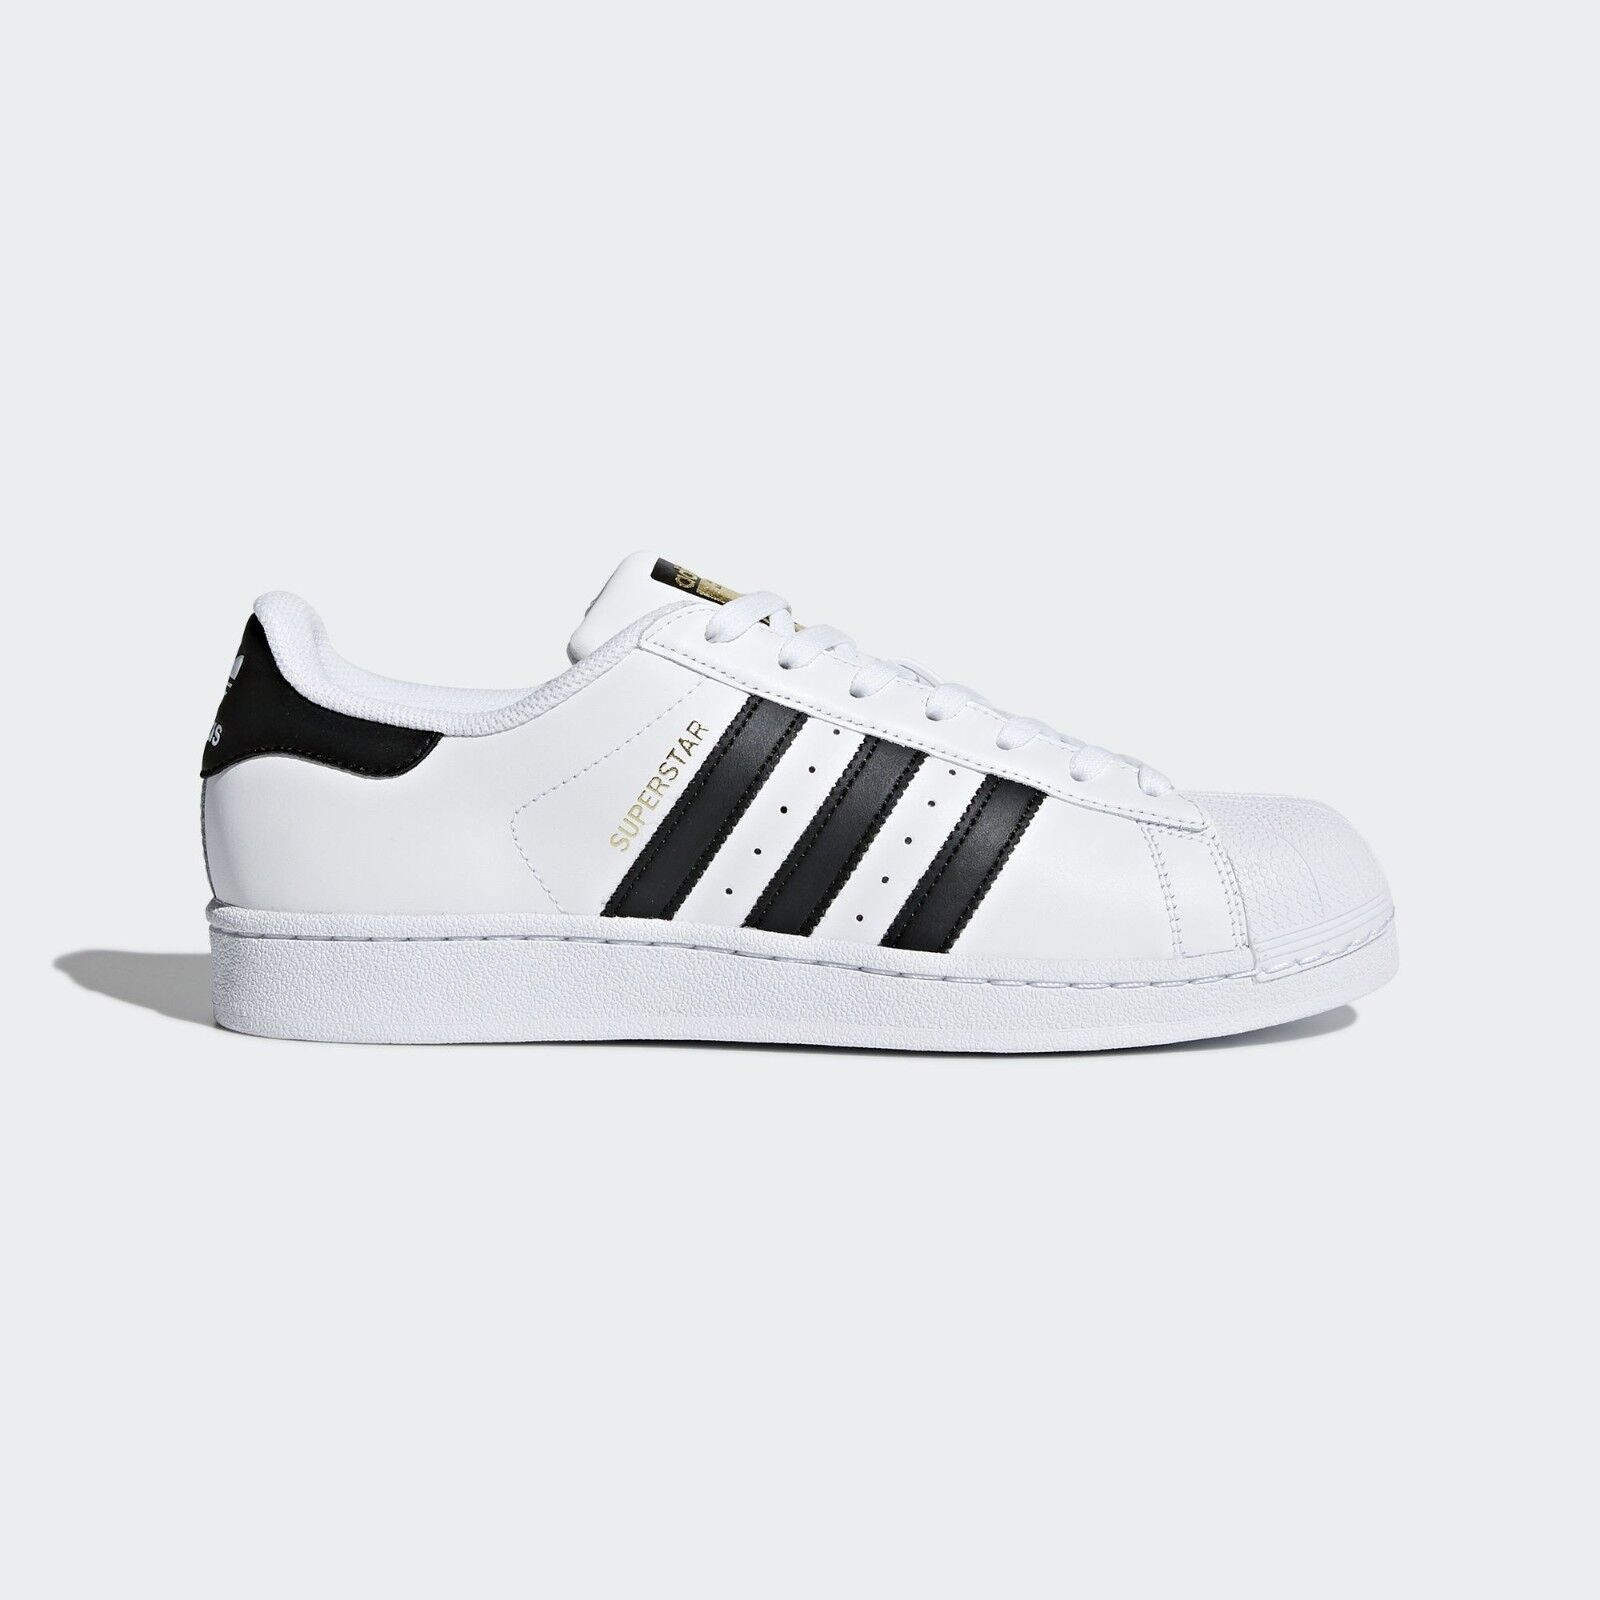 Zapatos SUPERSTAR Adidas Originals Originals Adidas 40-42-44-45 C77124 06f49b